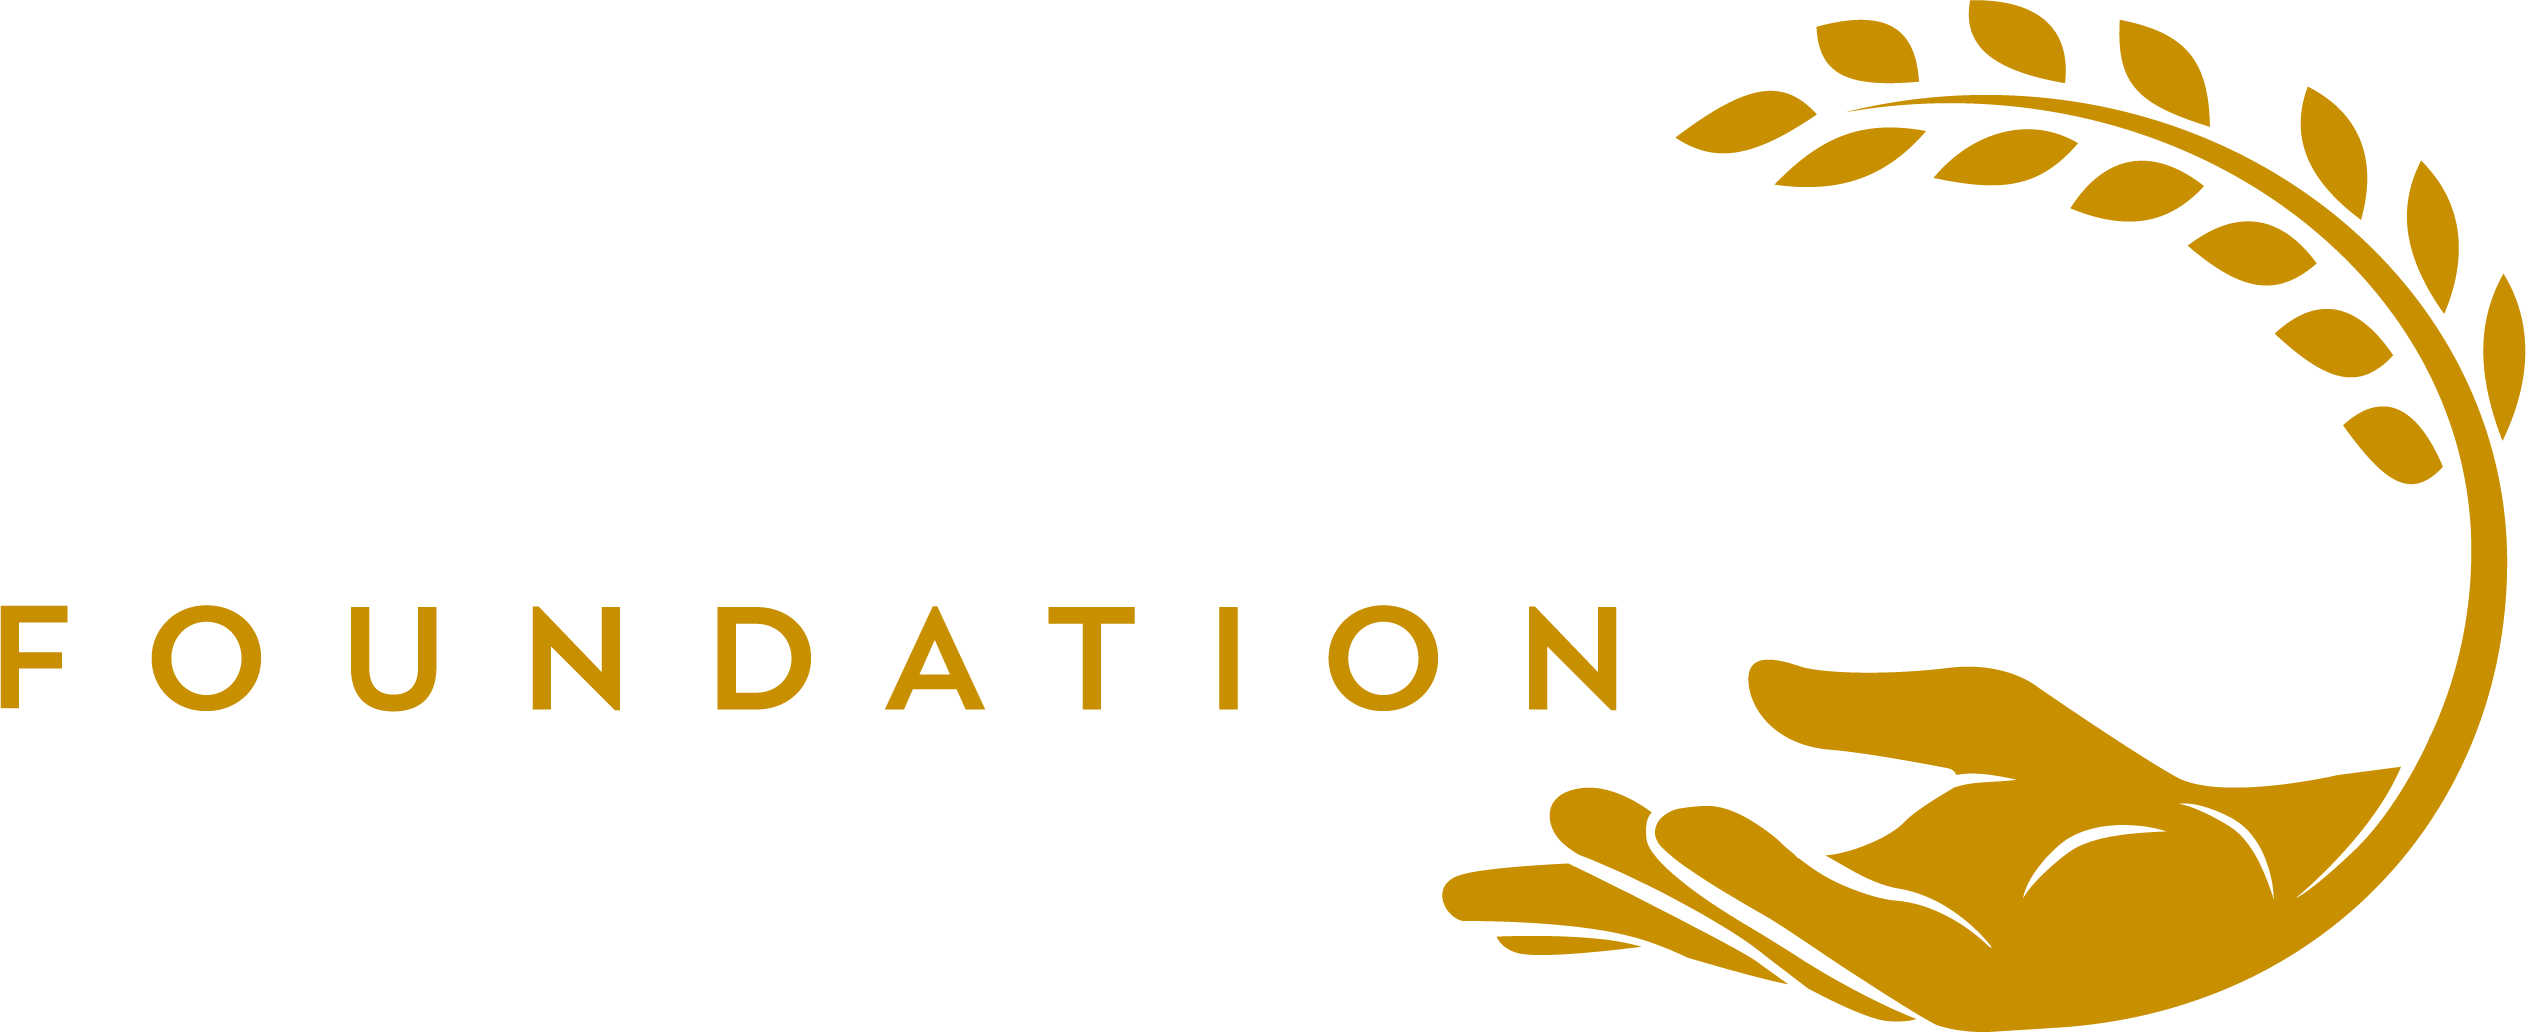 Stephens Bakery Foundation